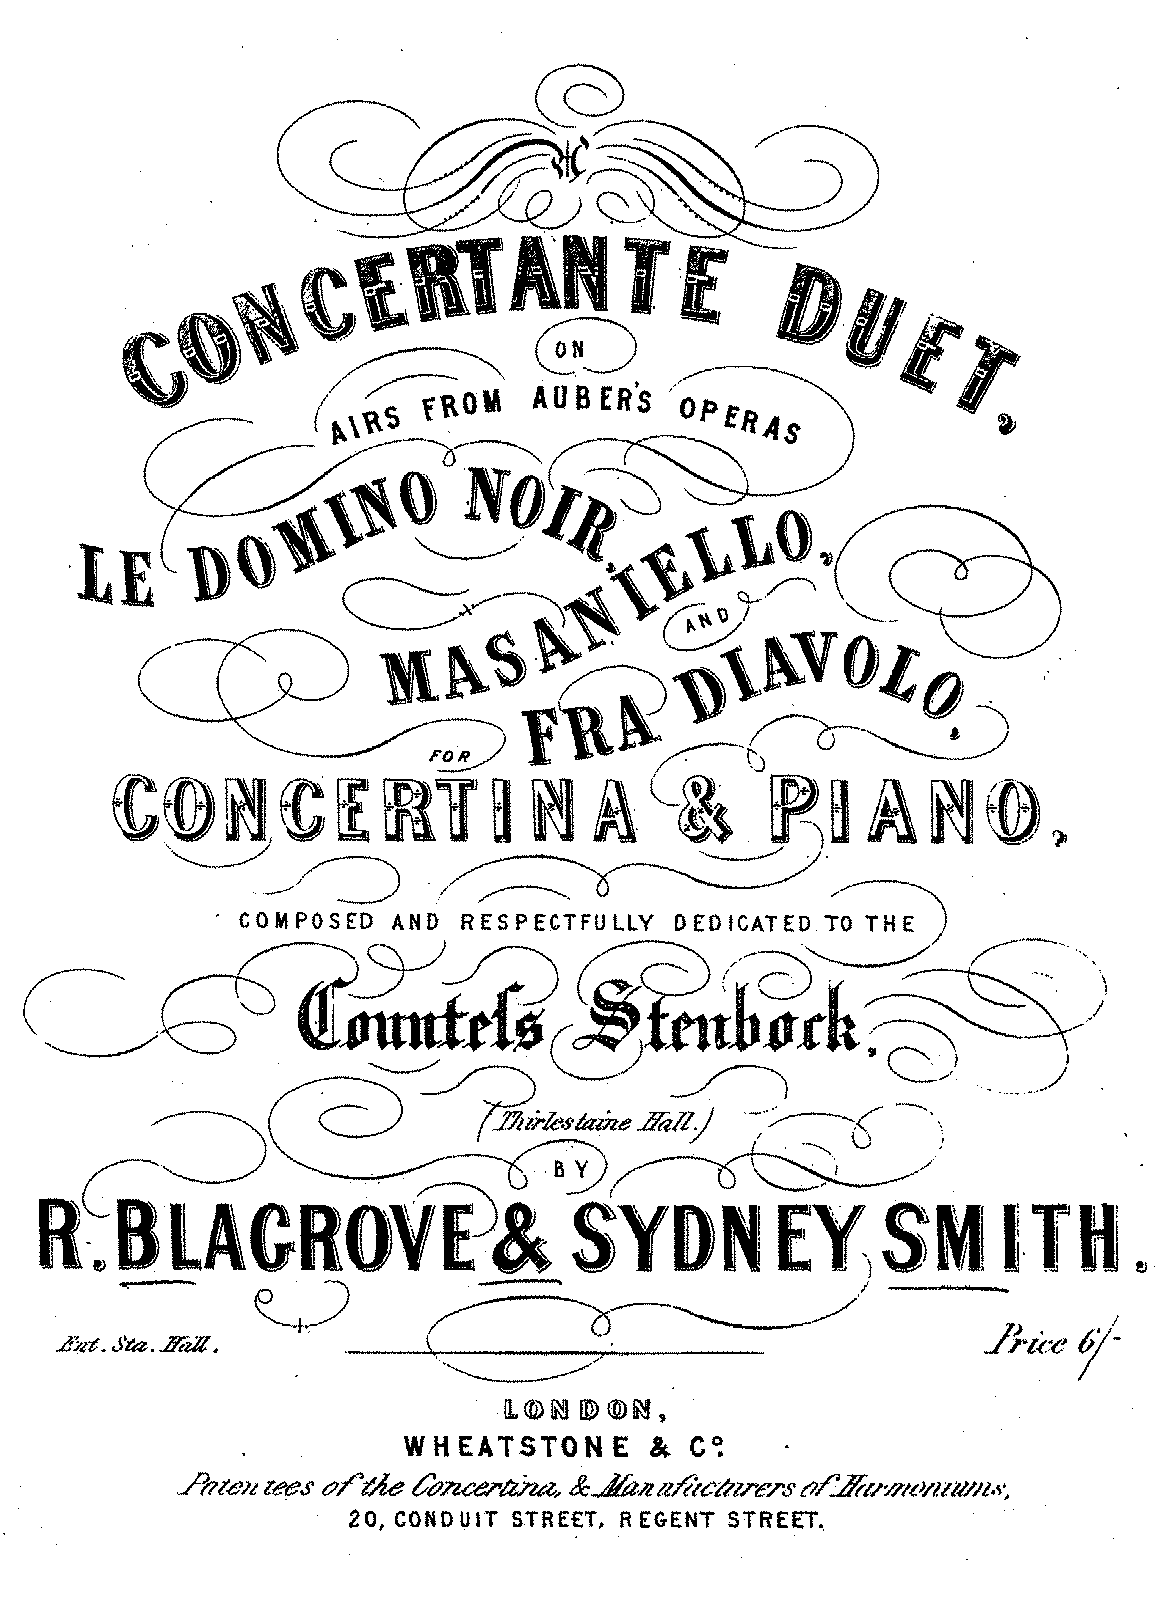 PMLP199339-smith op001 auber concertante duet.pdf